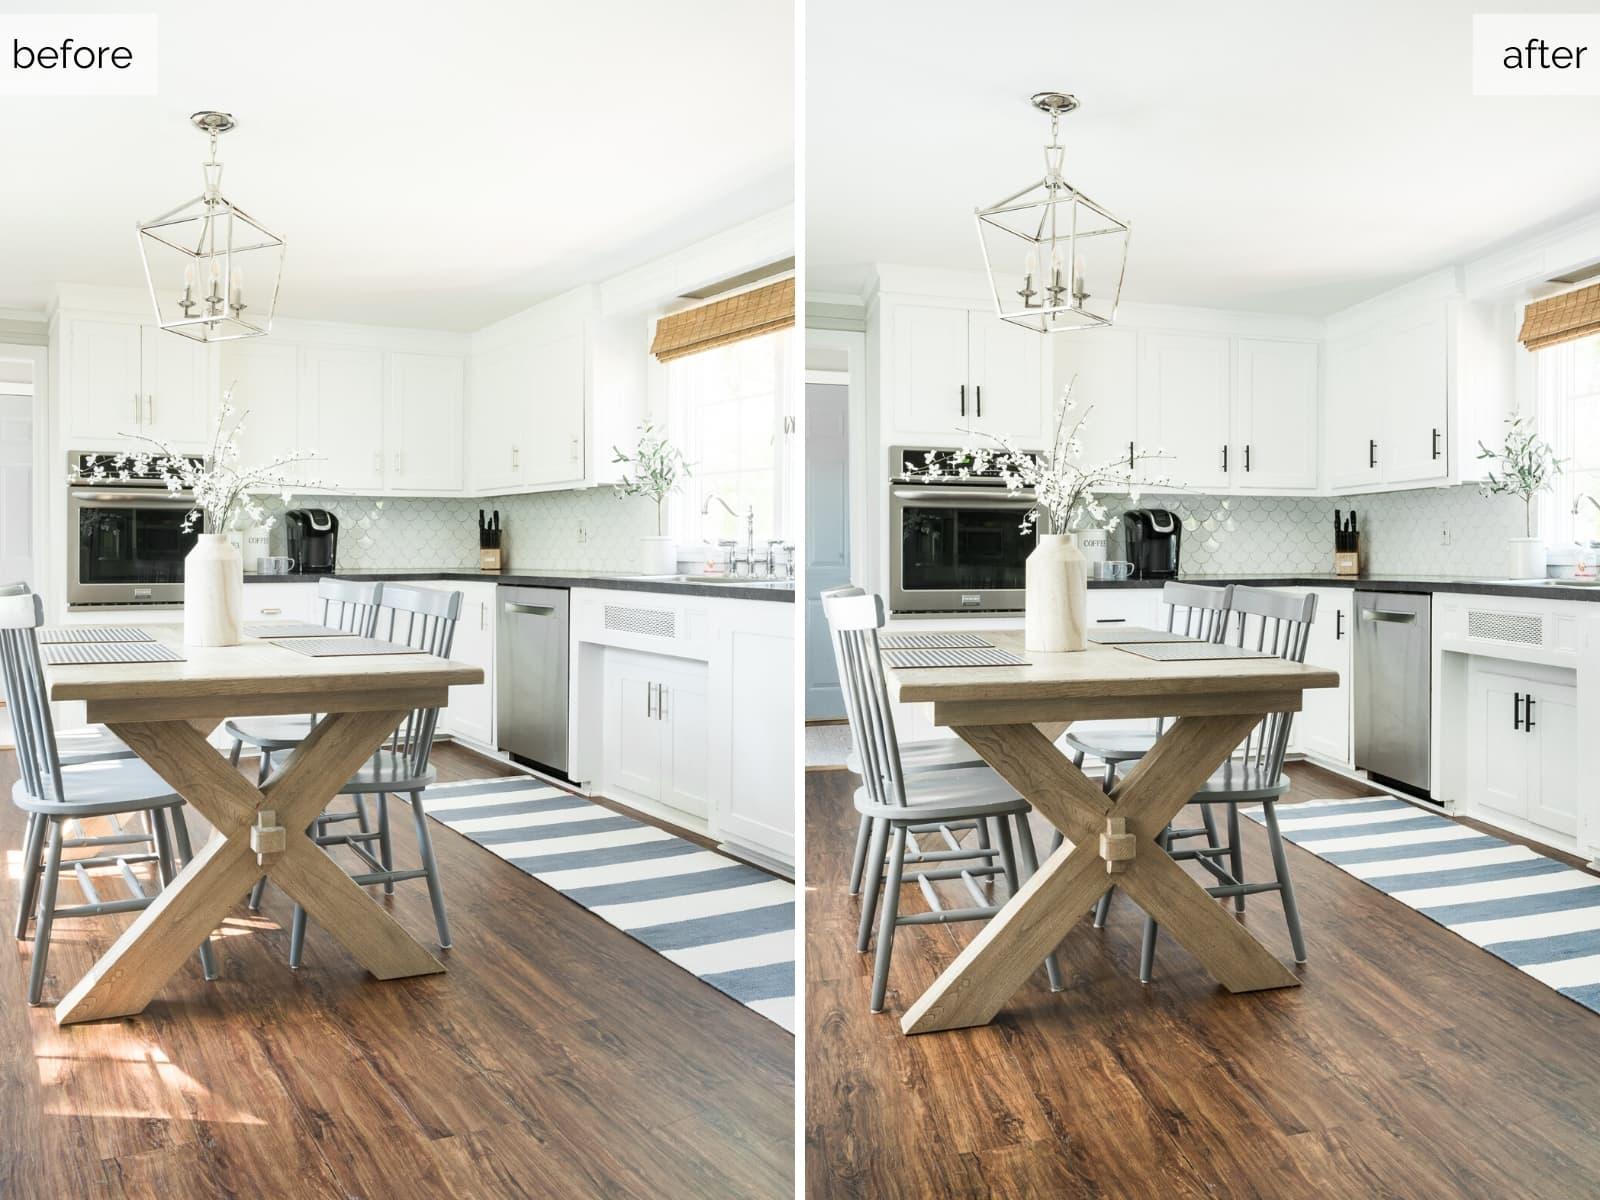 New hardware on cabinets  is an easy and quick way to update the look of your kitchen